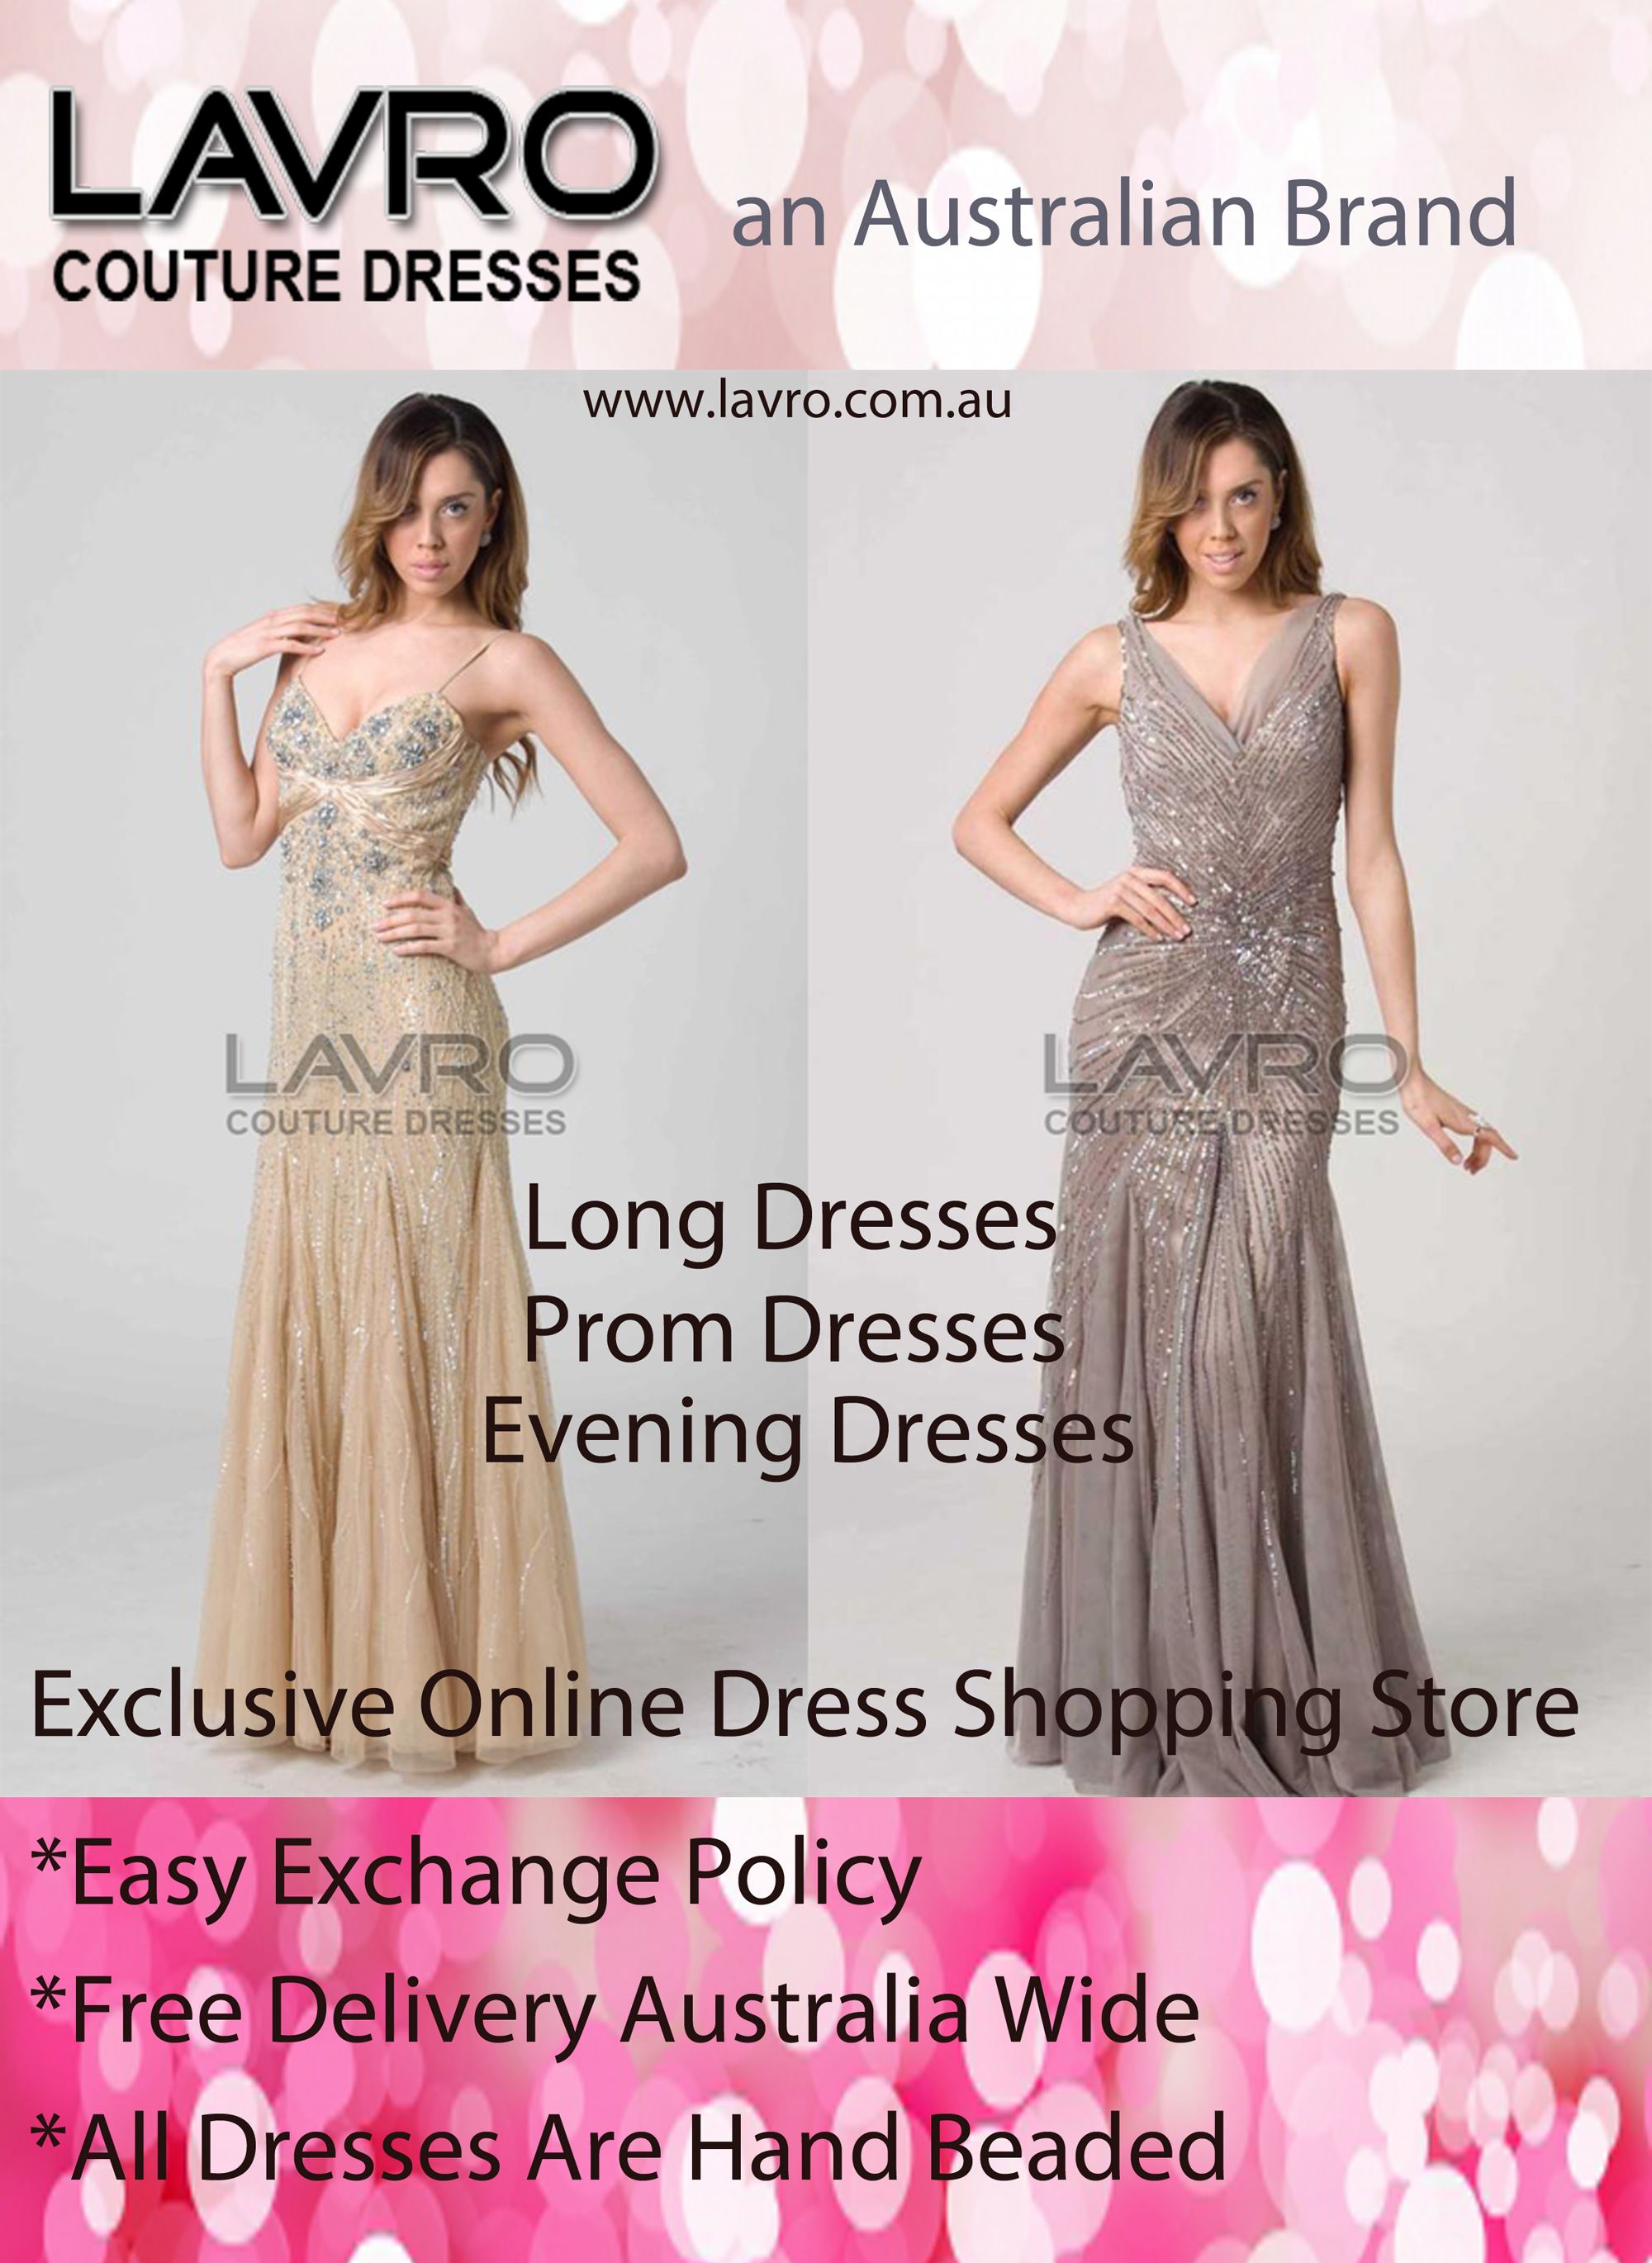 exclusive-online-dresses-shopping-store-lavro-couture-dresses.png